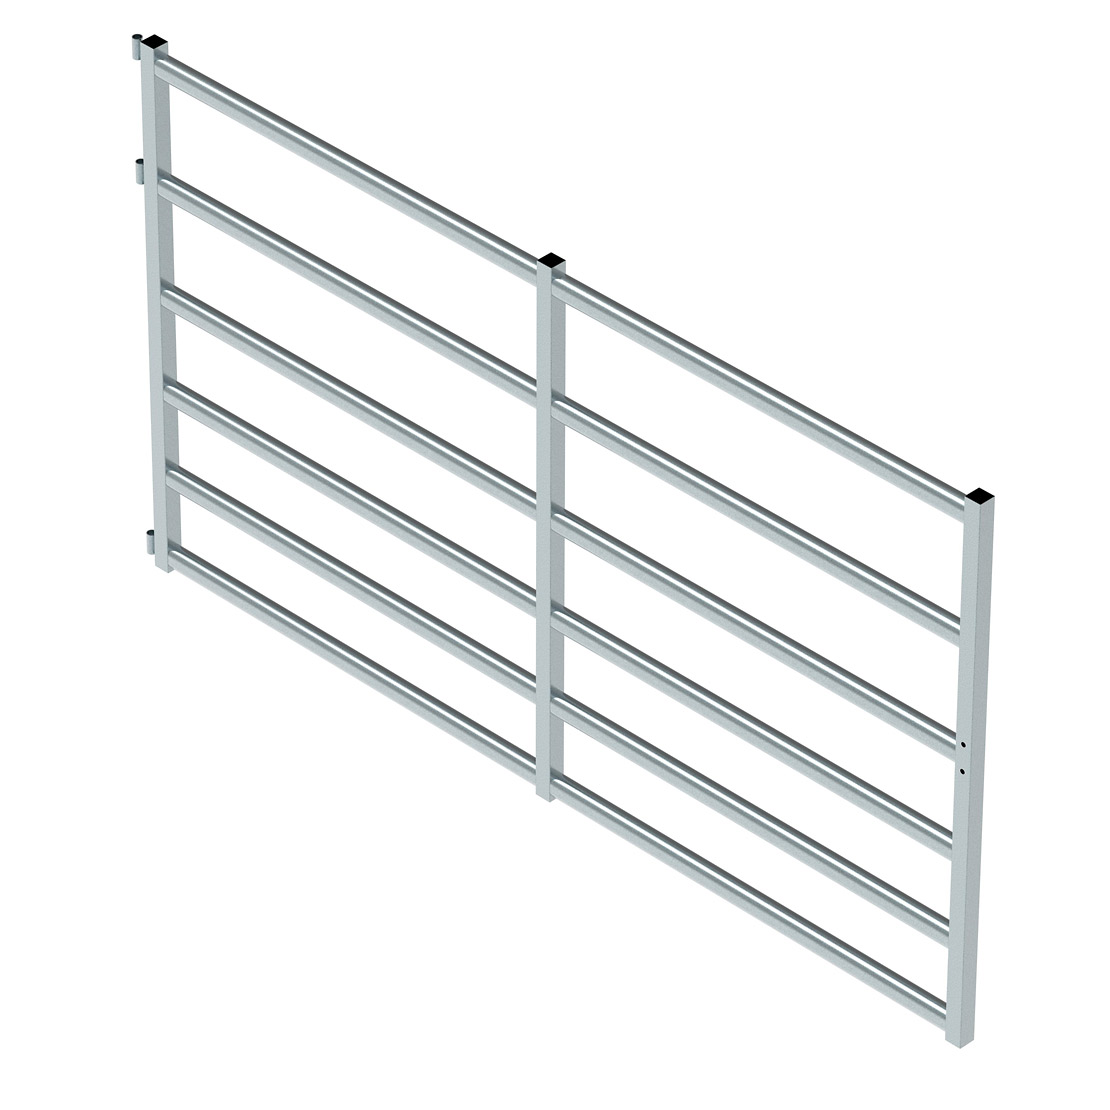 Cattle Gate 6 Rail (2800mm x 1580mm High)